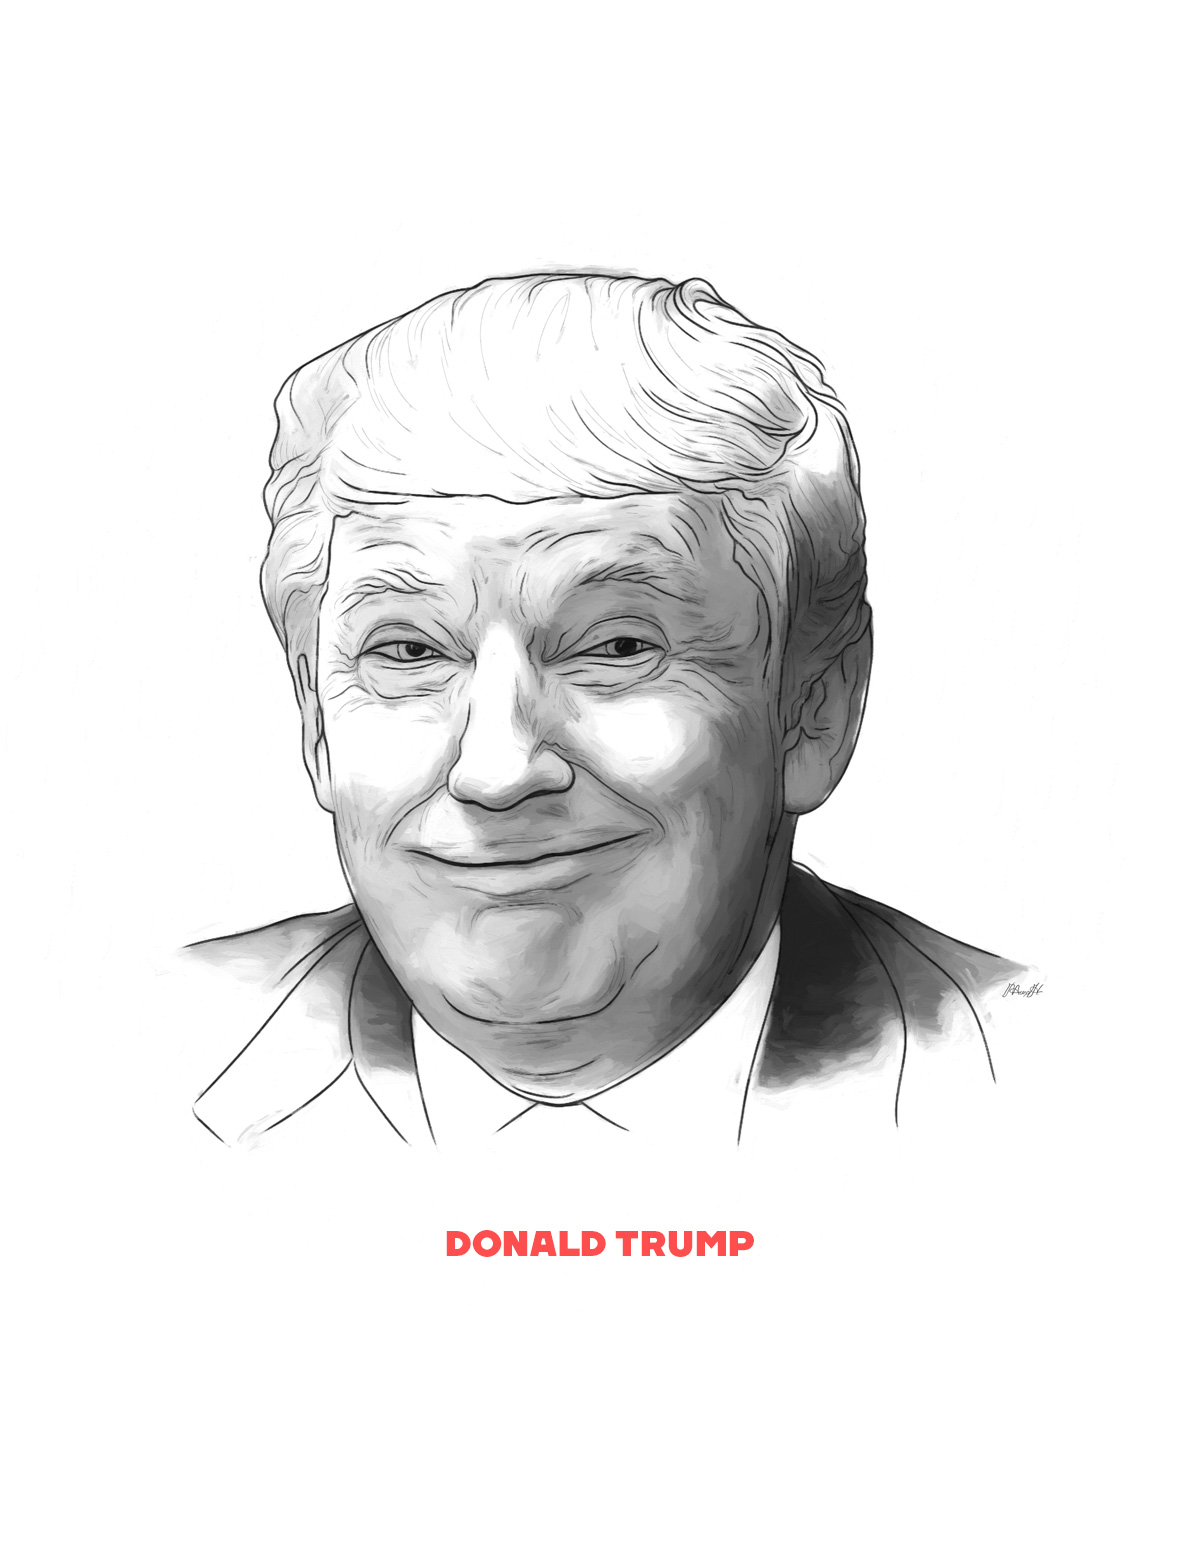 Donald Trump portrait from People of 2016 series, by Max Hancock